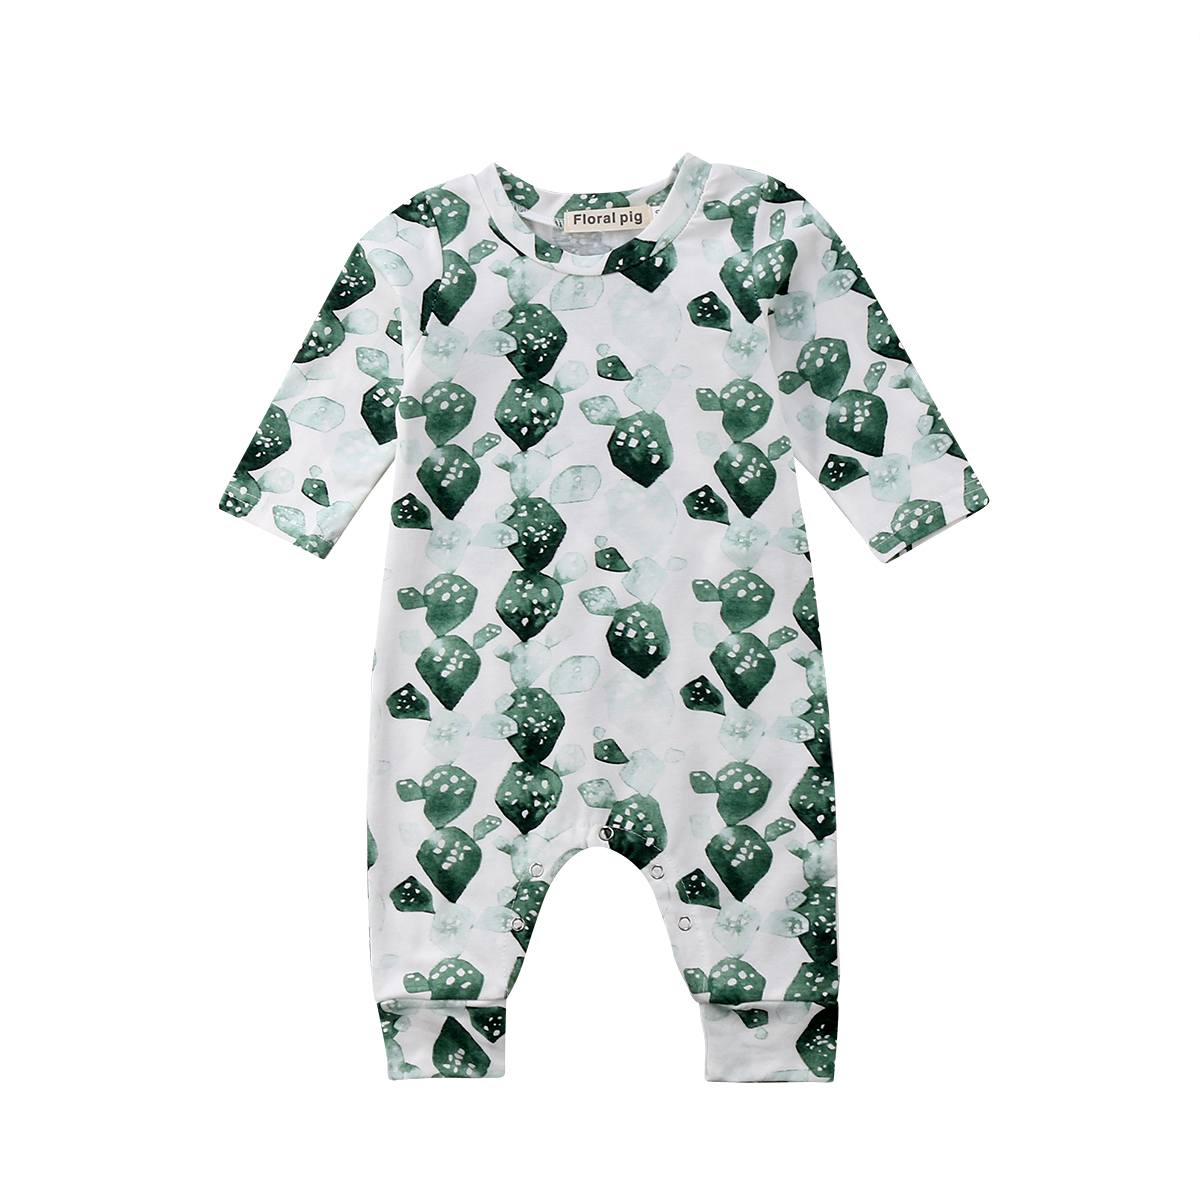 9e31f900b Newborn Baby Girls Boys Rompers Cactus Pattern Summer Jumpsuit ...